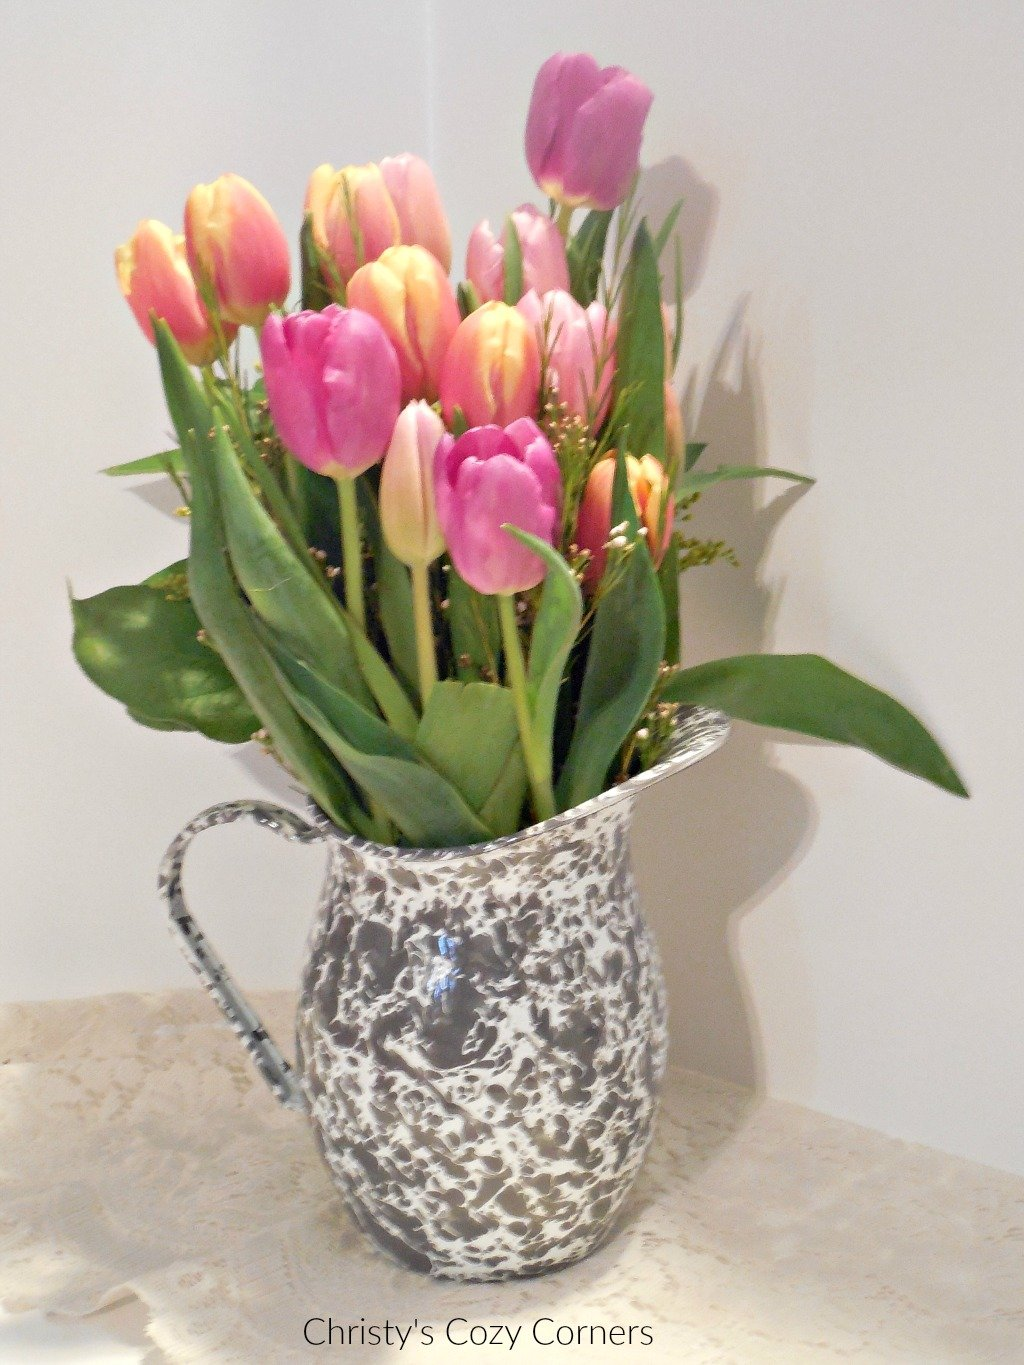 Celebrate Spring with BloomThat